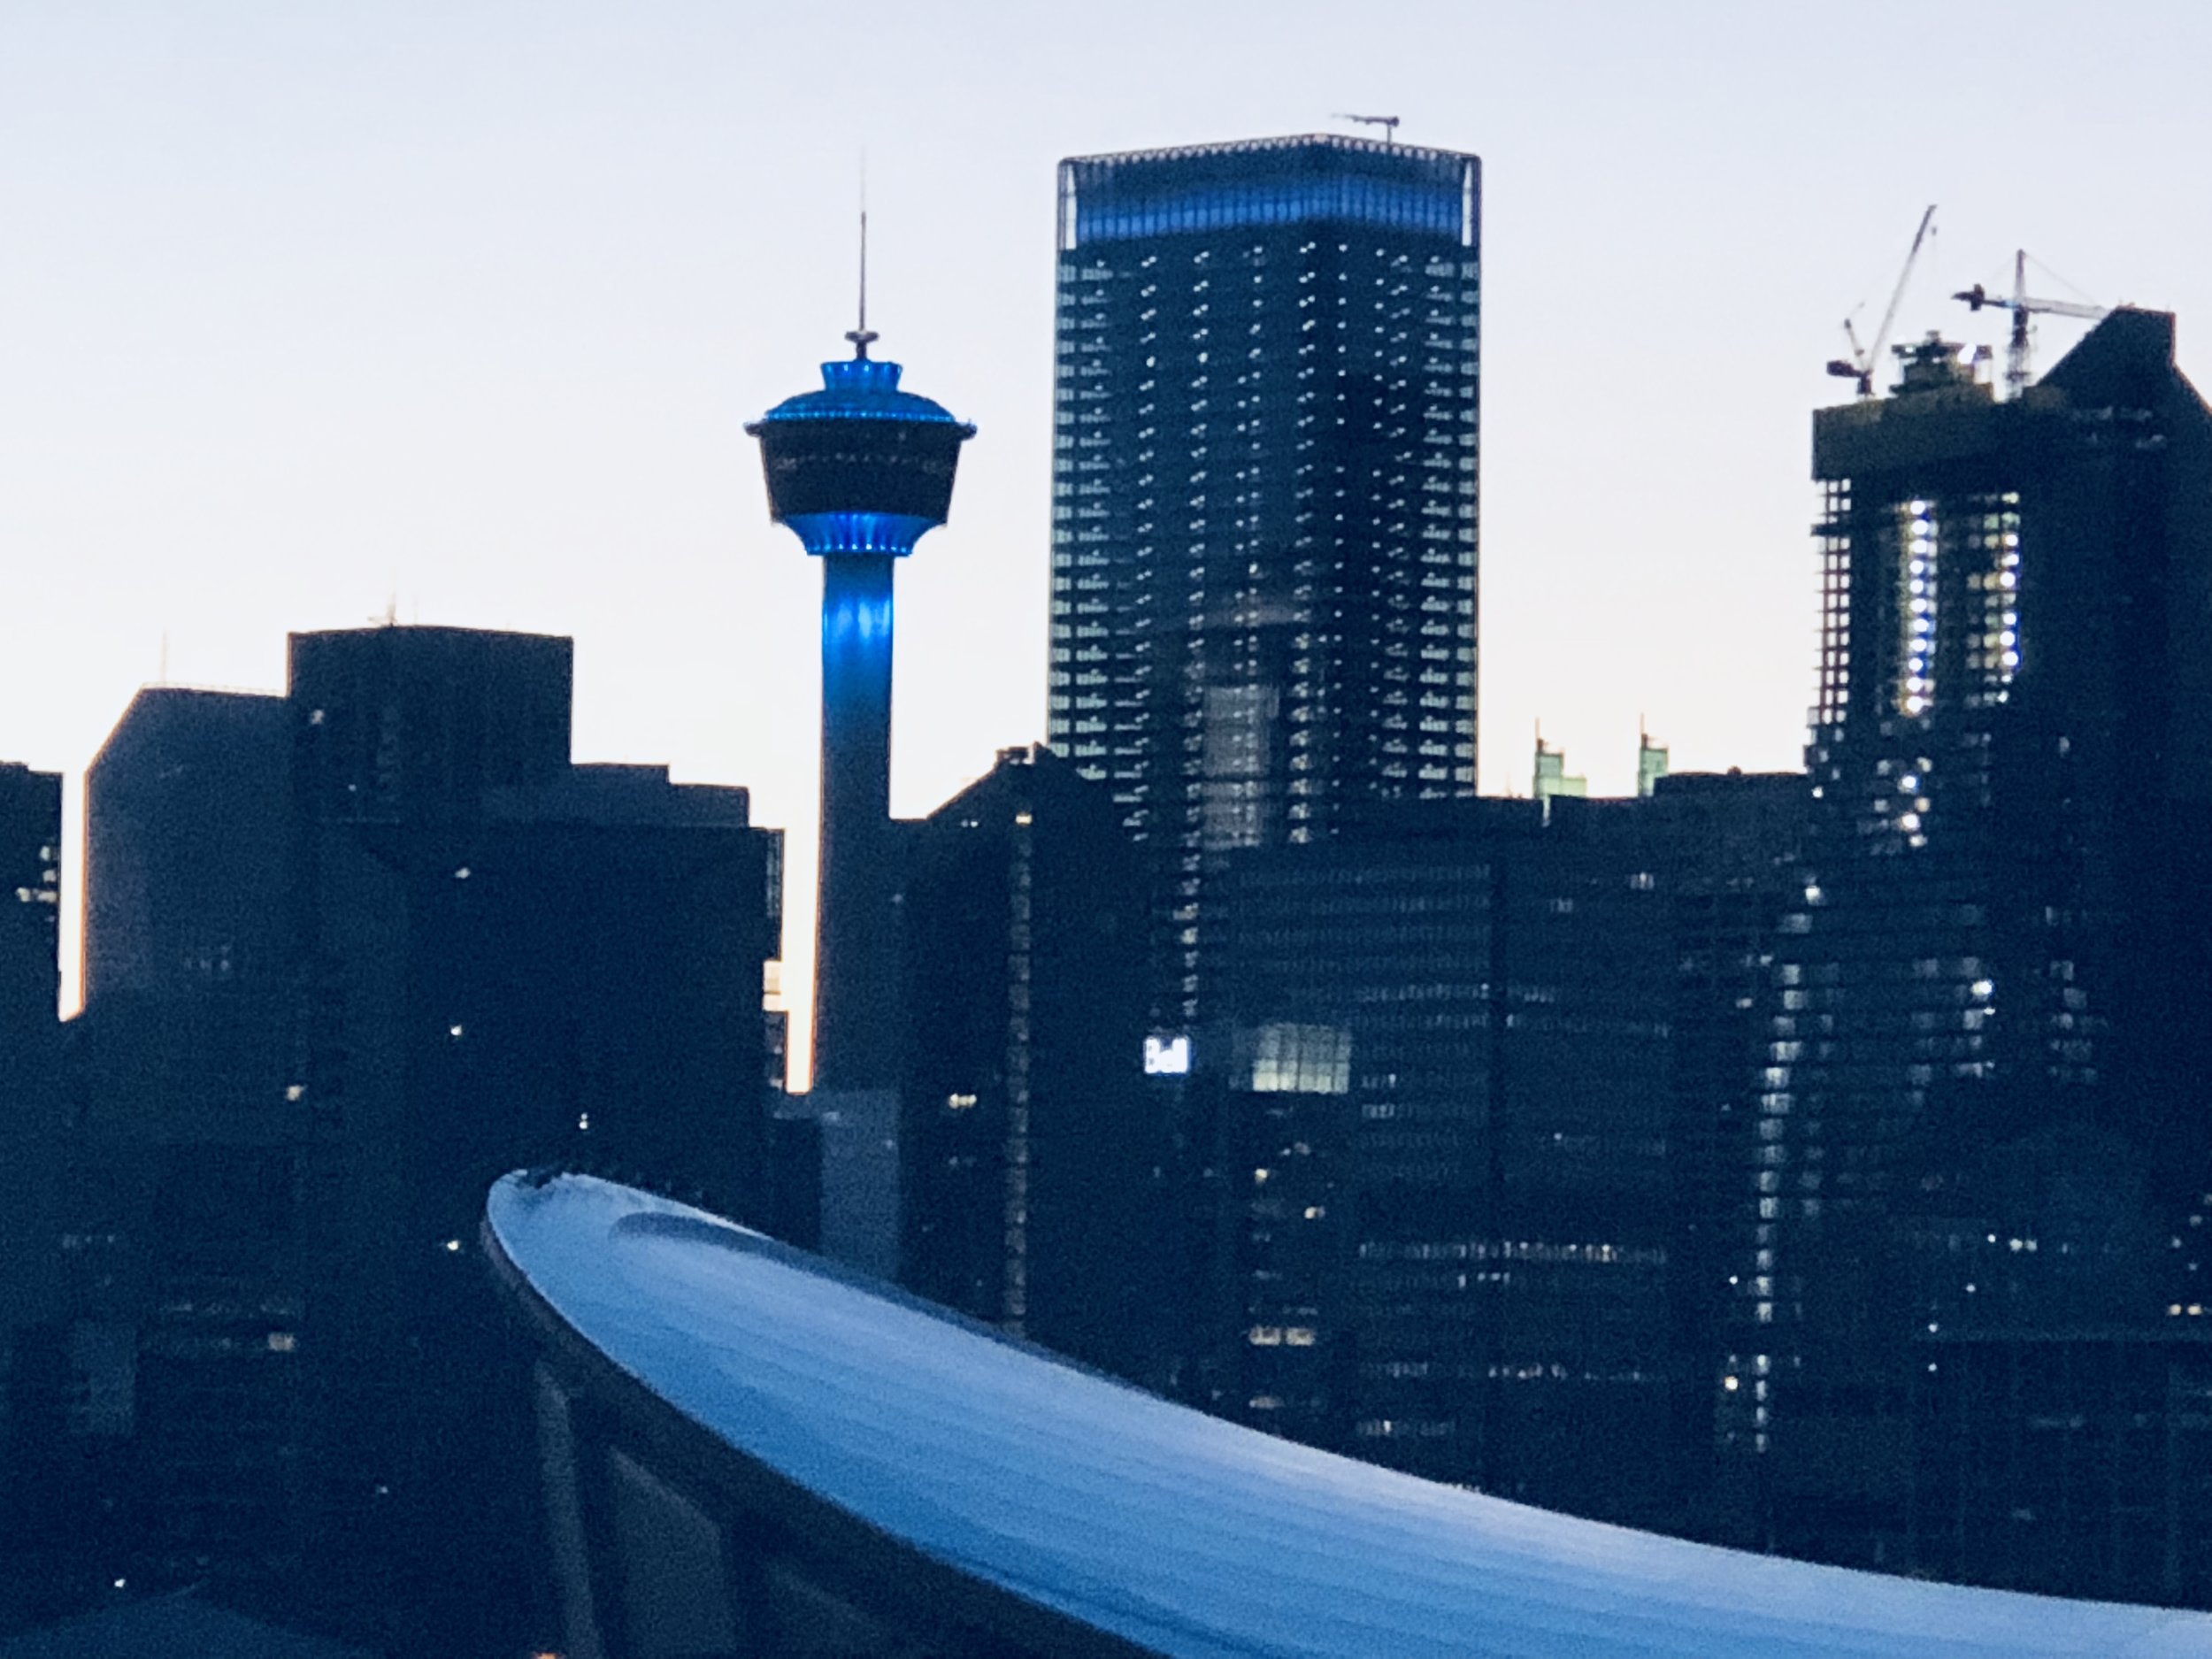 Food Allergy Awareness Week #turnitteal Calgary Tower Lighting